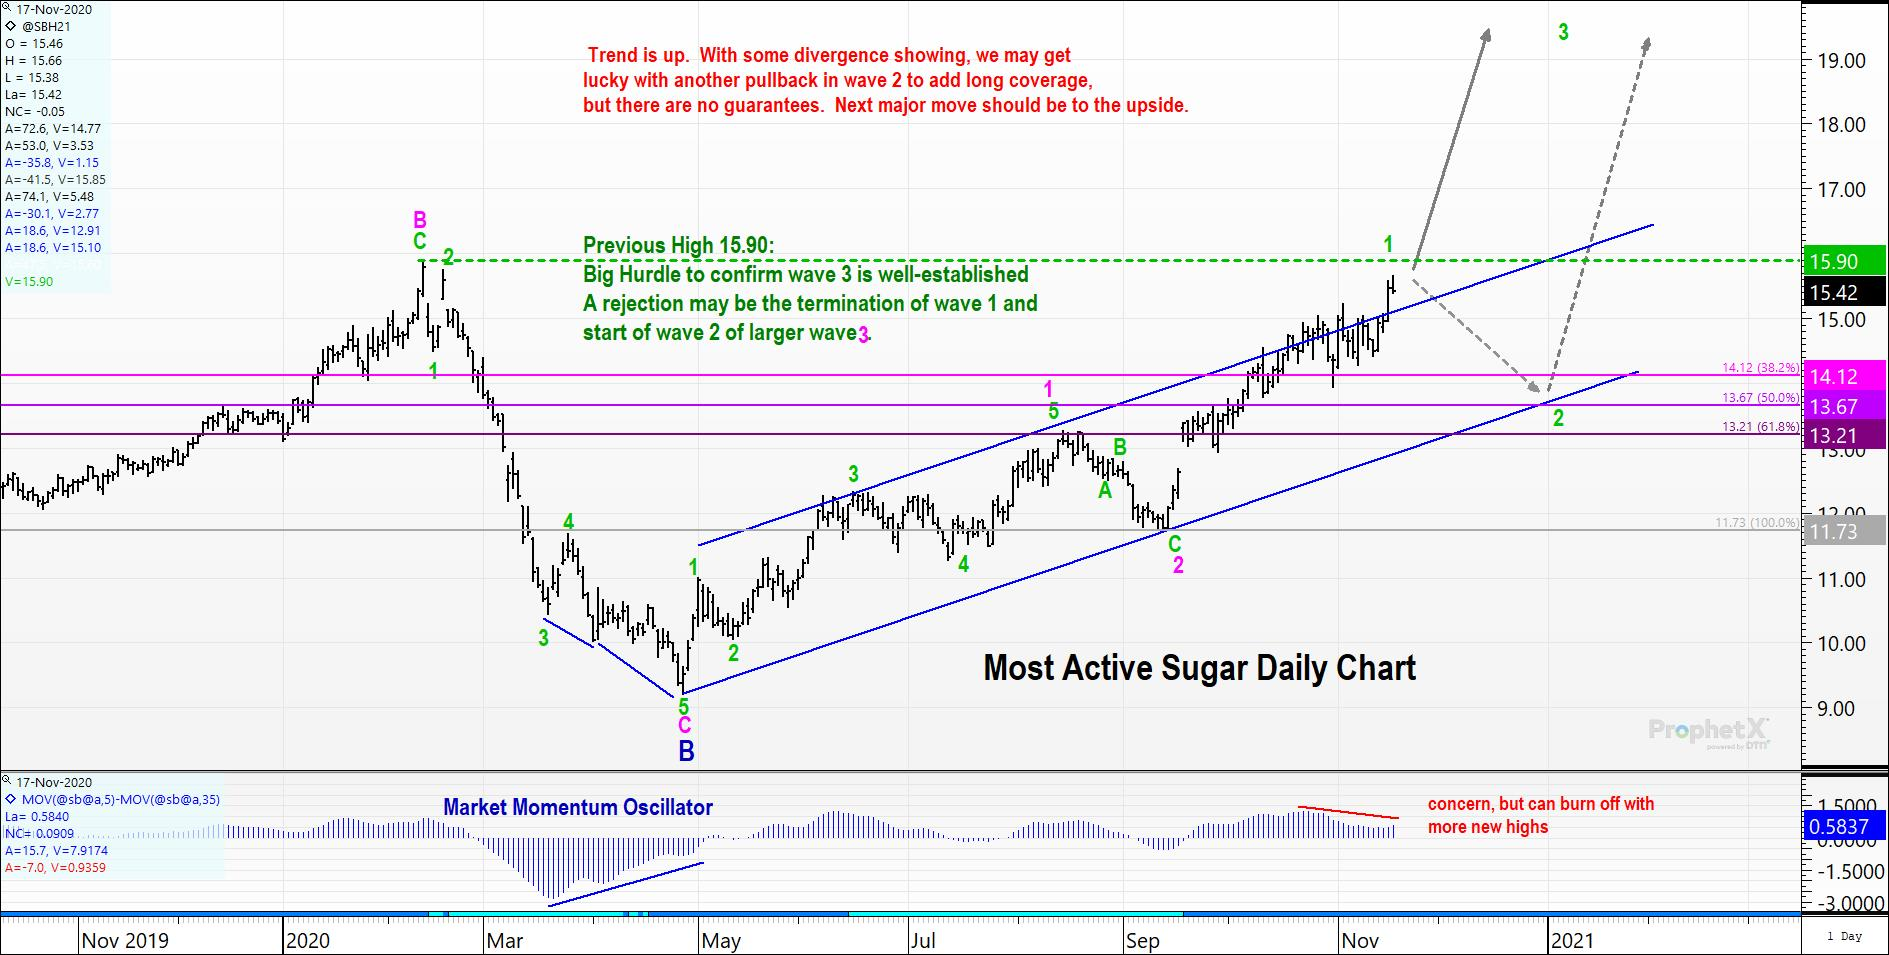 Most Active Sugar Futures Contract